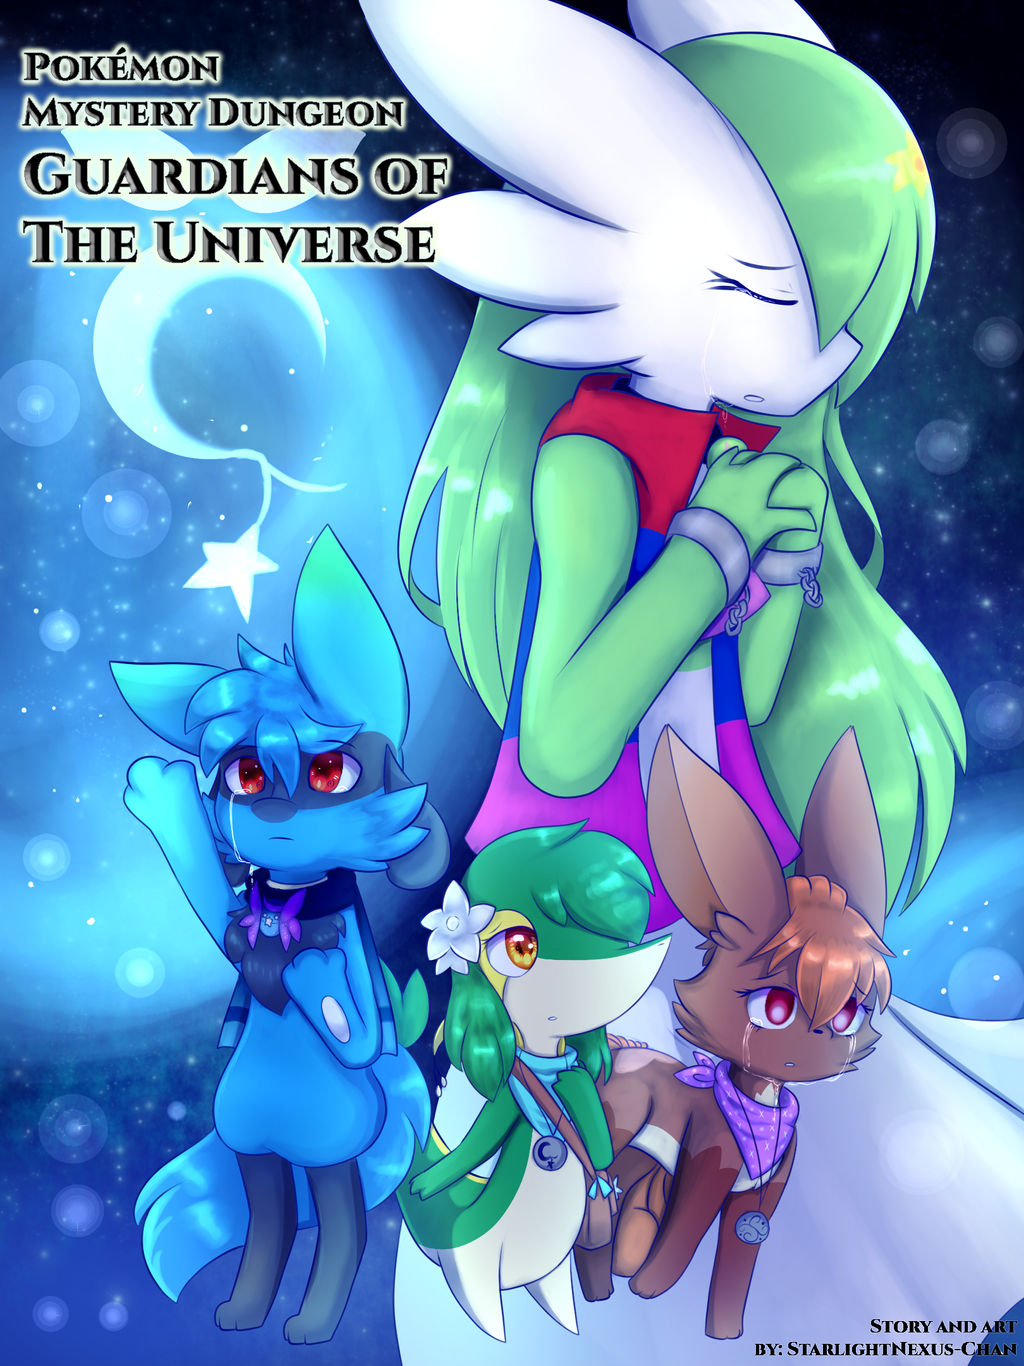 Pokemon Mystery Dungeon: Guardians of the Universe